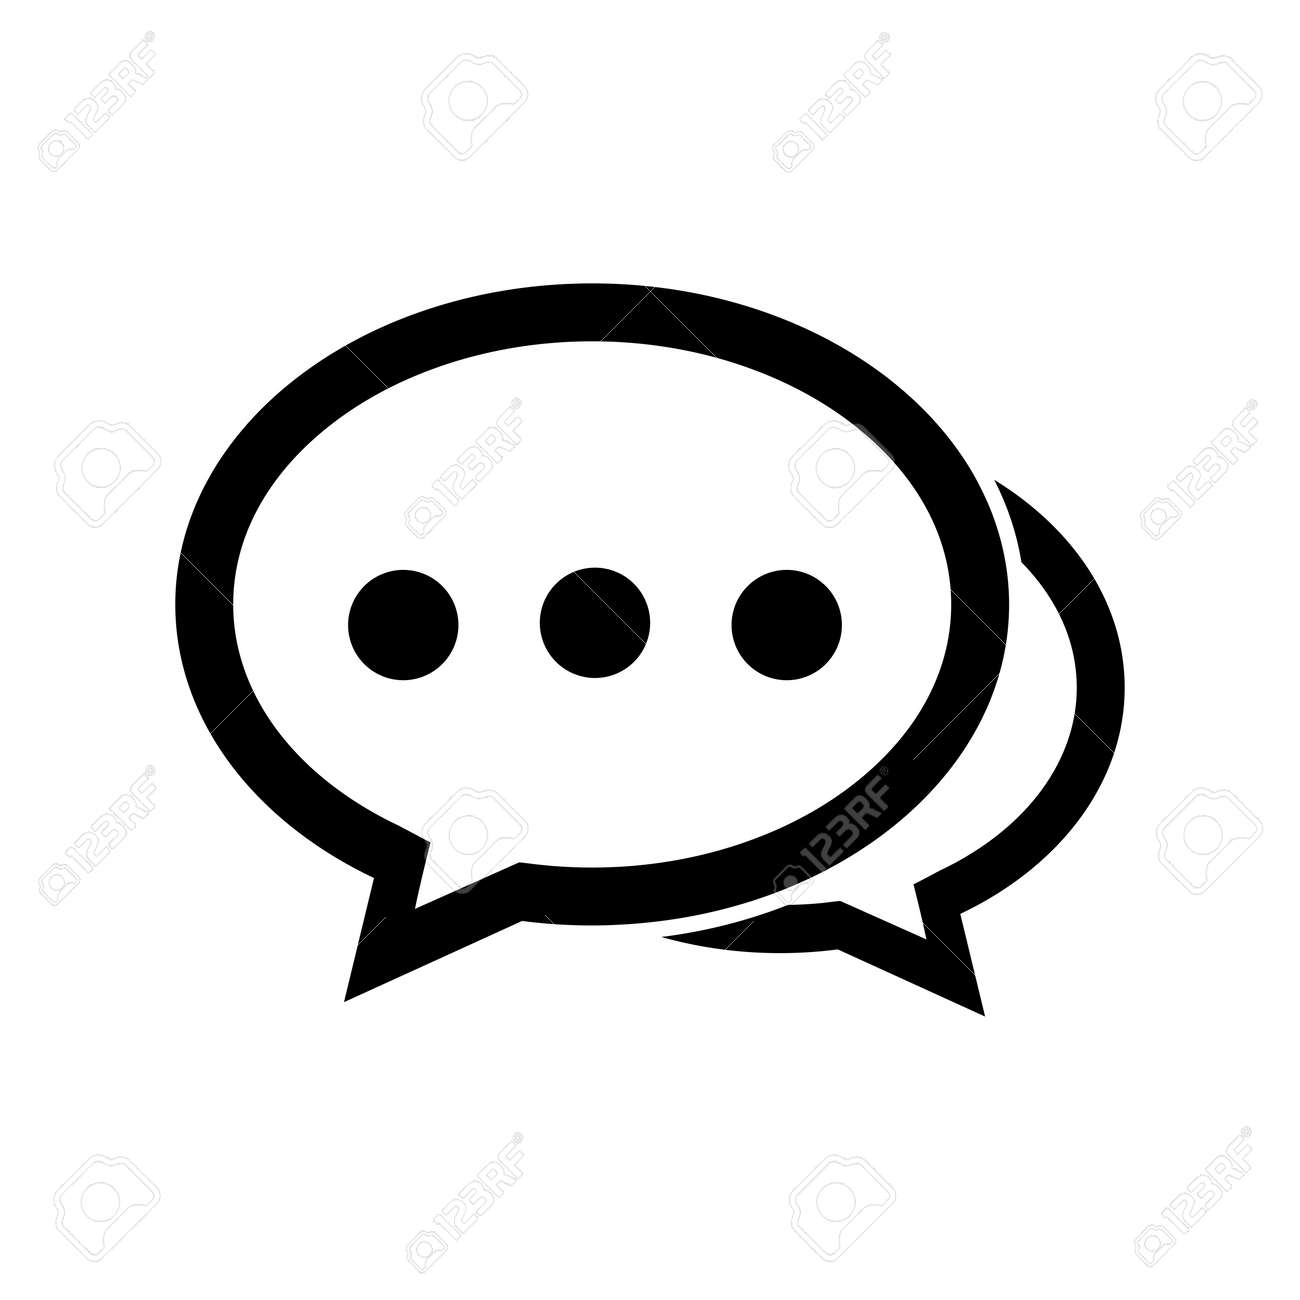 Chat icon in flat line style isolated on white background. Speech bubble symbol for your website design, app, UI. Vector illustration. Vector illustration. - 169574265